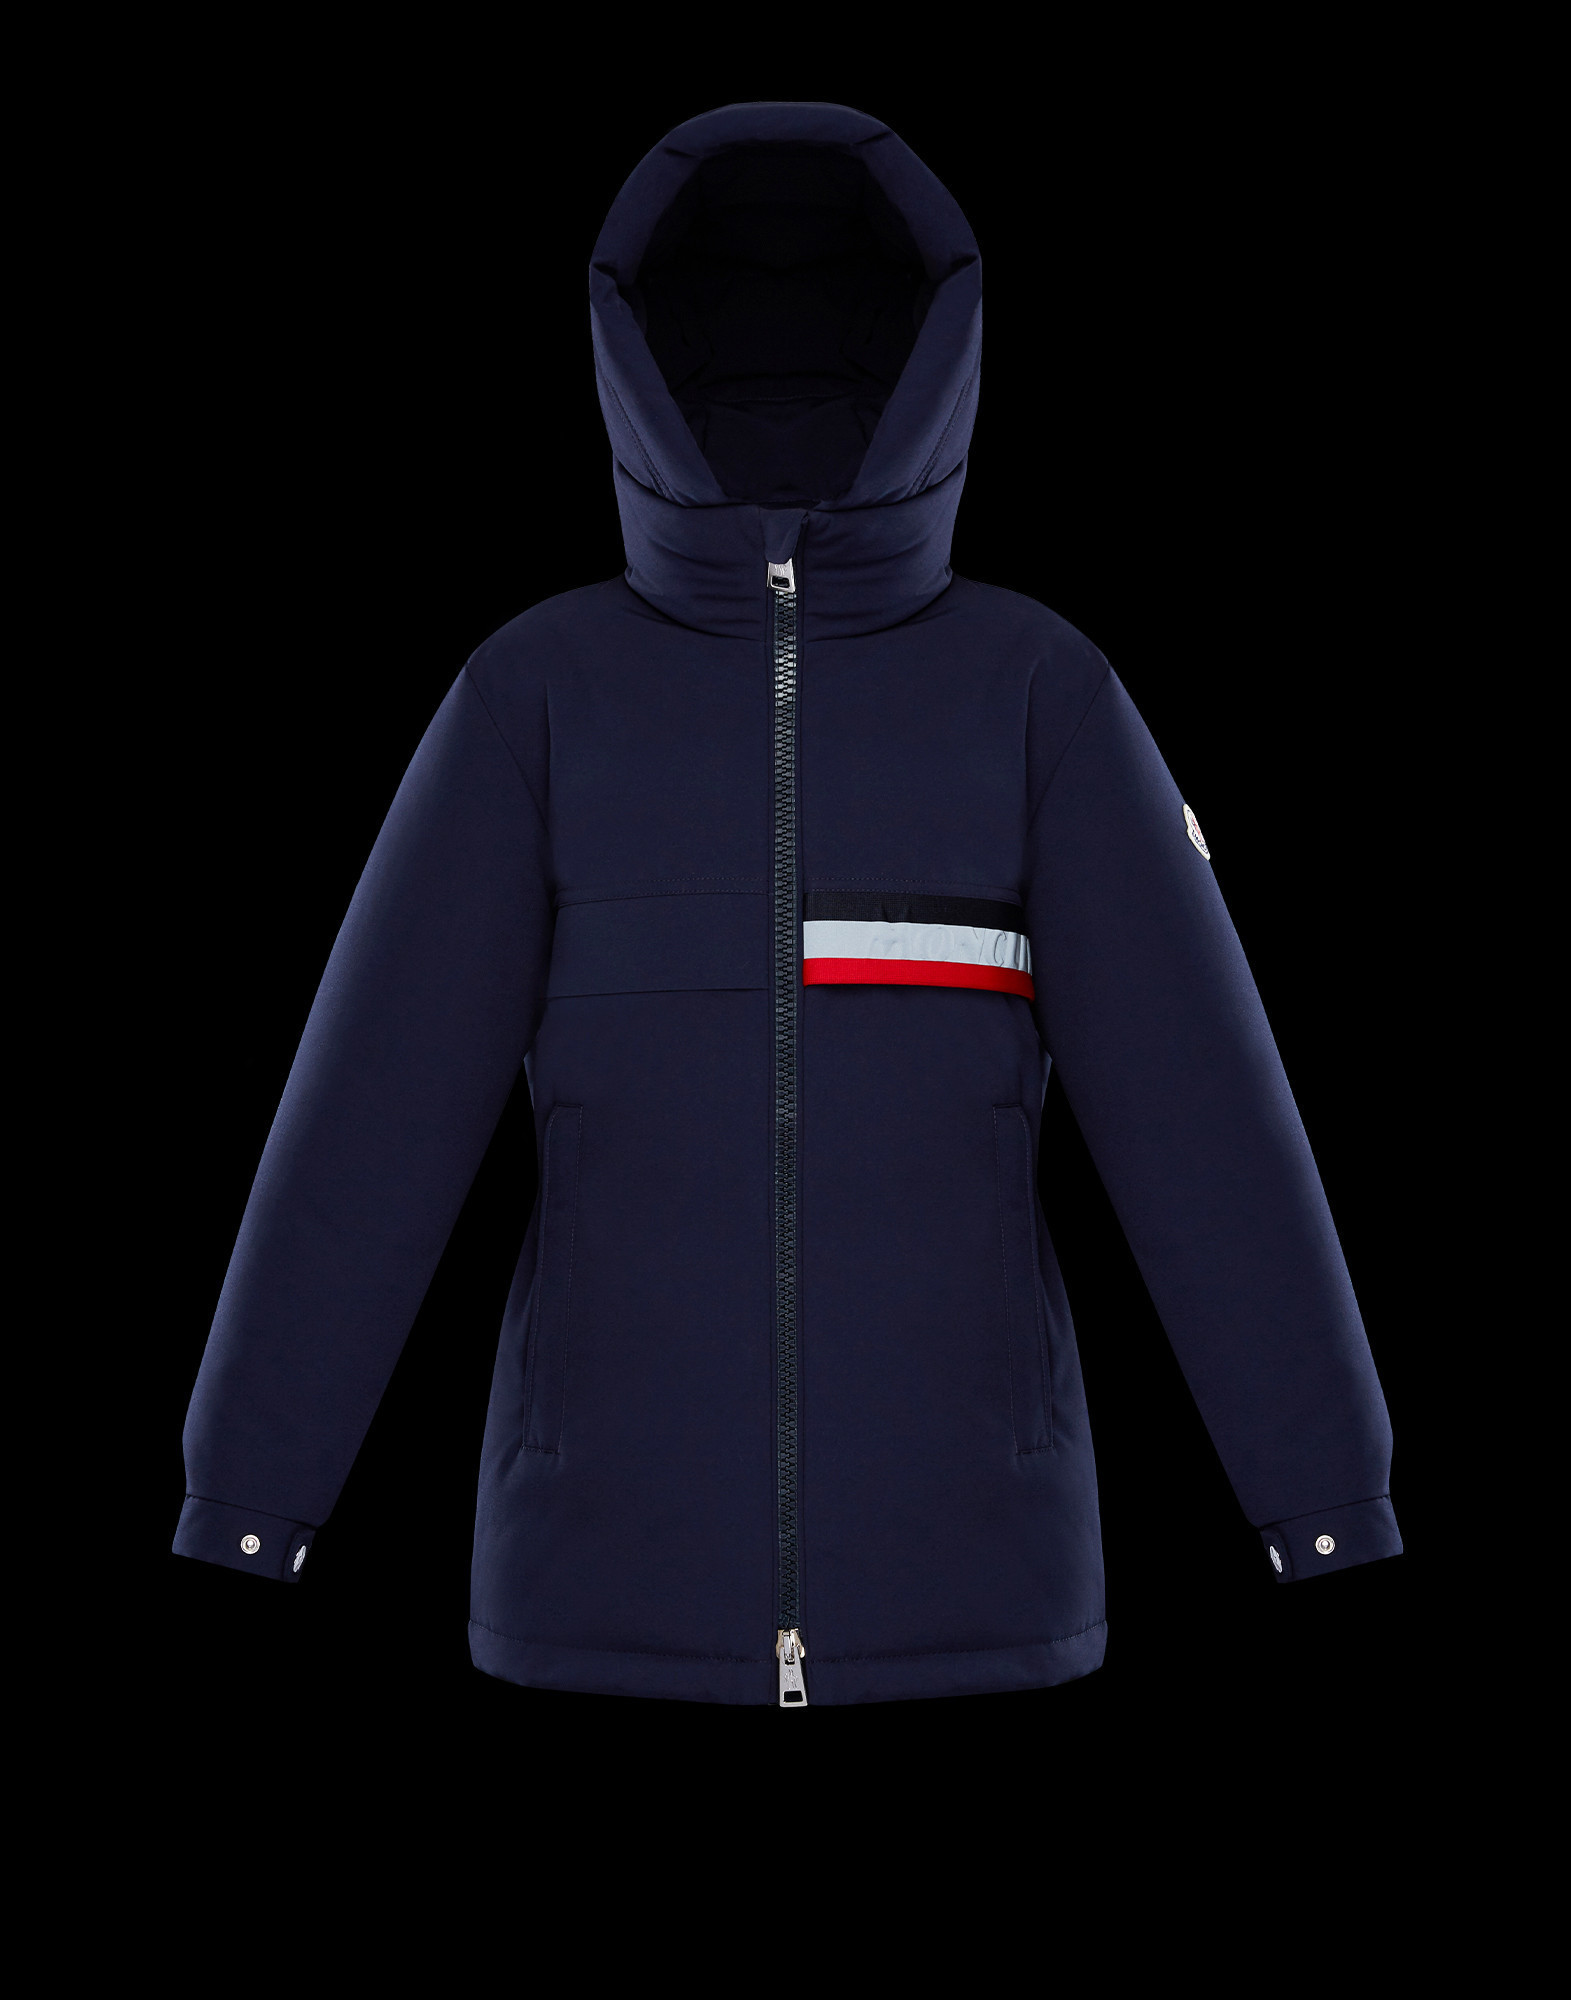 MONCLER2020/21秋冬新作キッズフード付きダウンPISACE  8A/10A (MONCLER/キッズアウター) 954 1C505 20 57843J